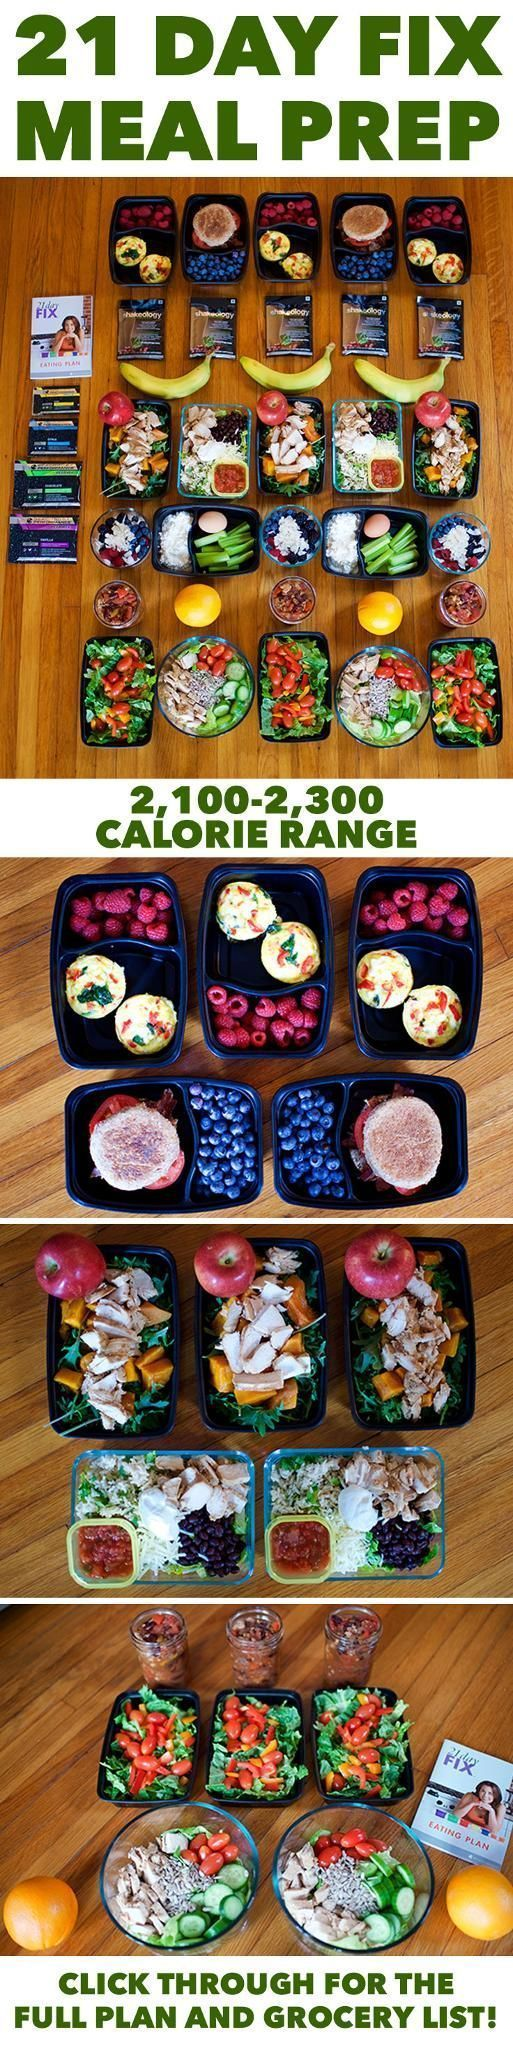 Meal Prep for the 21 Day Fix 2,100-2,300 Calorie Level -- Click through for a complete guide to healthy eating all week long! // meal prep monday // nutrition // clean eating // weight loss // 21 Day Fix approved // beachbody // beachbody blog